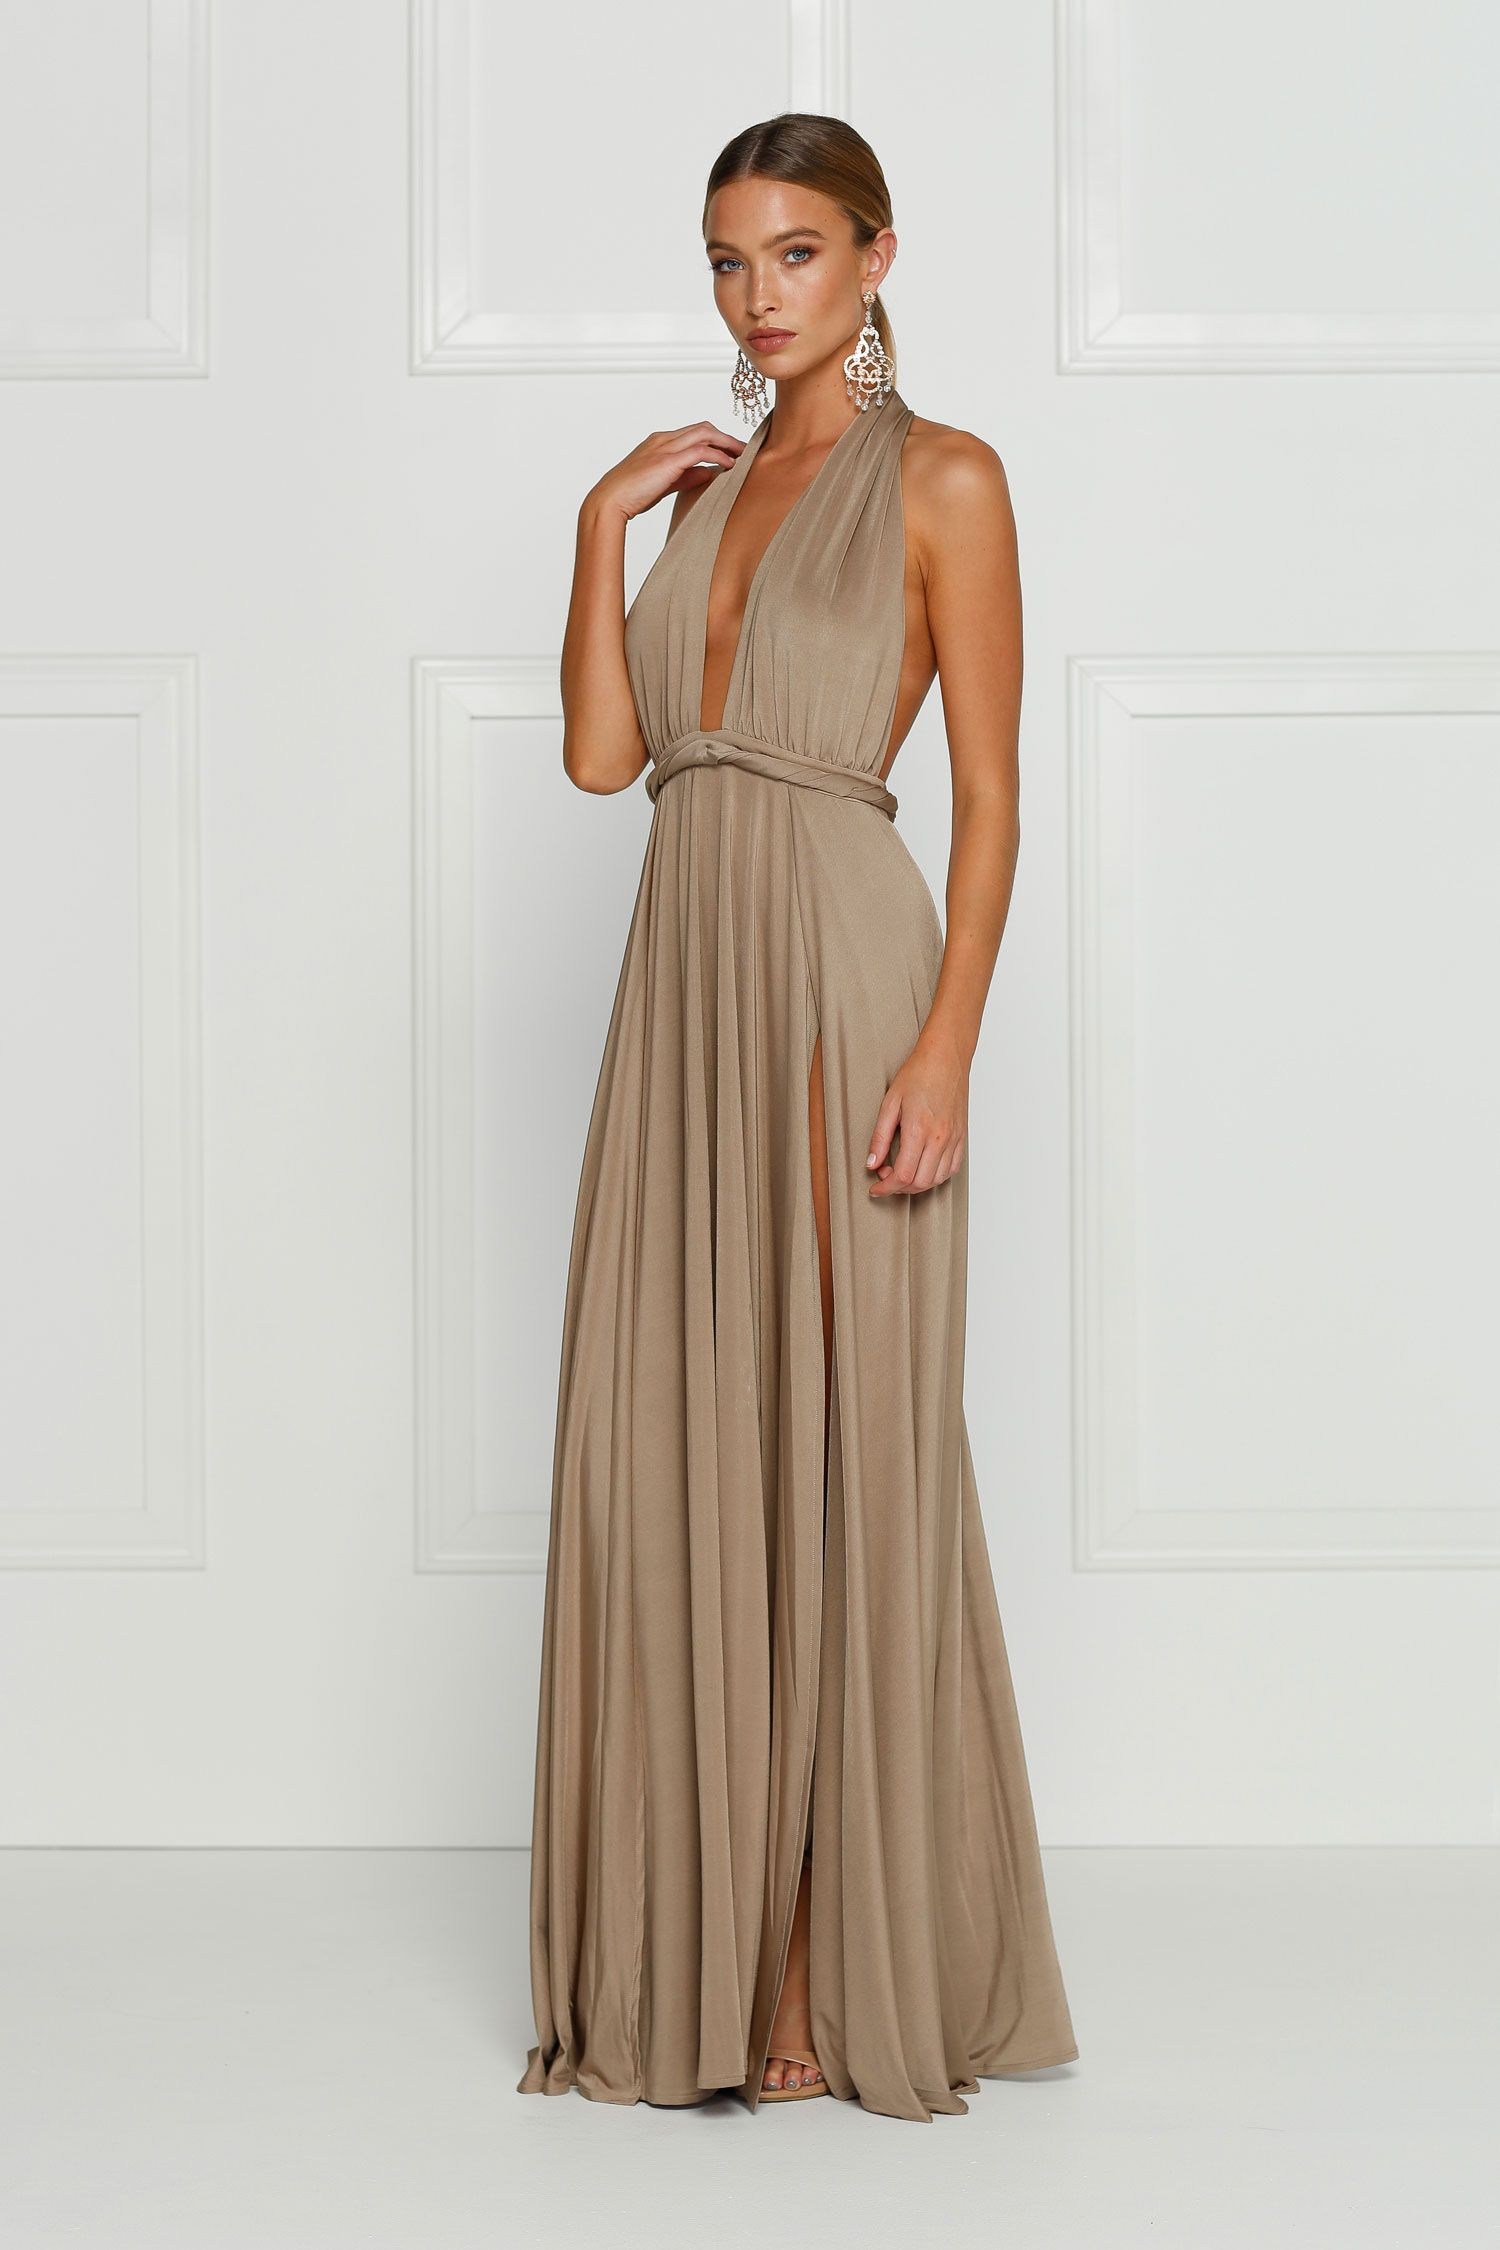 d47fad9dad1 Catalina Gown by Alamour The Label. Available online for free express  worldwide shipping.